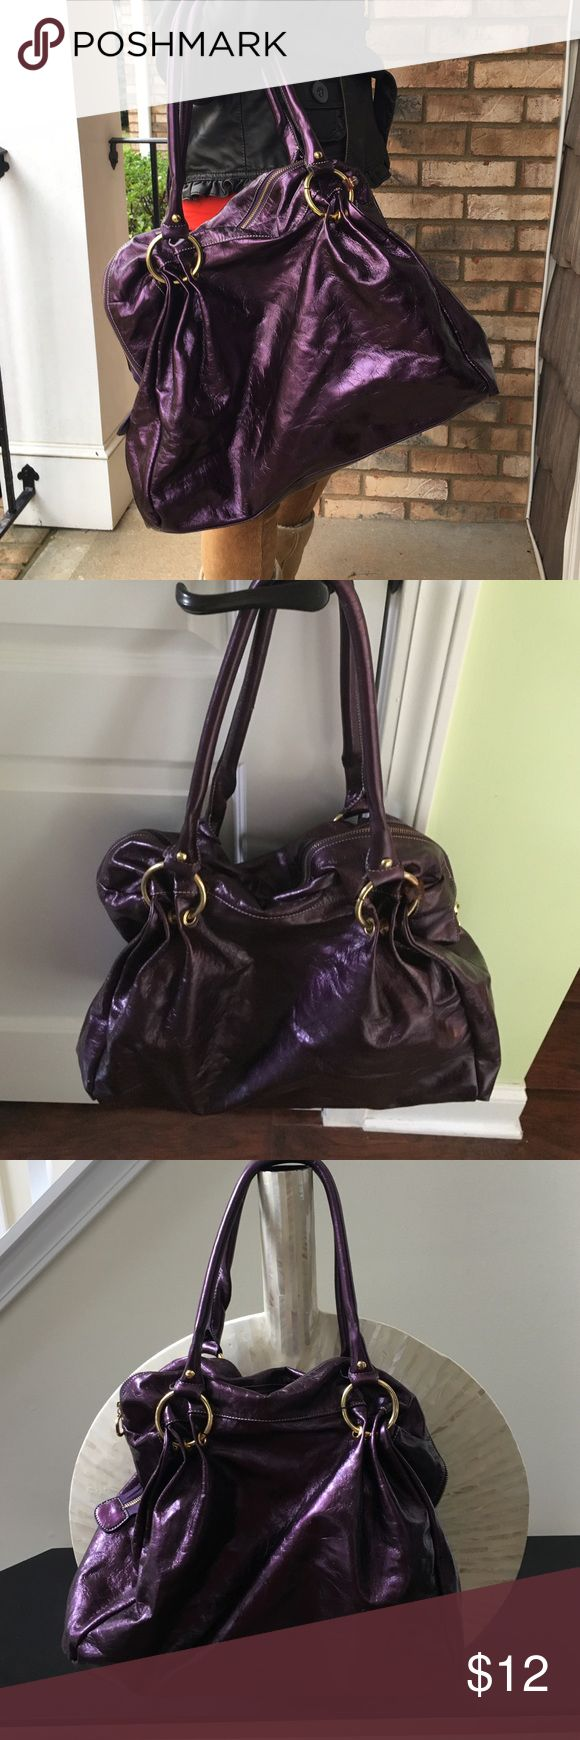 Purple shoulder bag Dark purple shiny faux leather bag in used condition. Some scuffing but still lots of life left. So many compartments inside too! Thanks for looking.💕 Bags Shoulder Bags